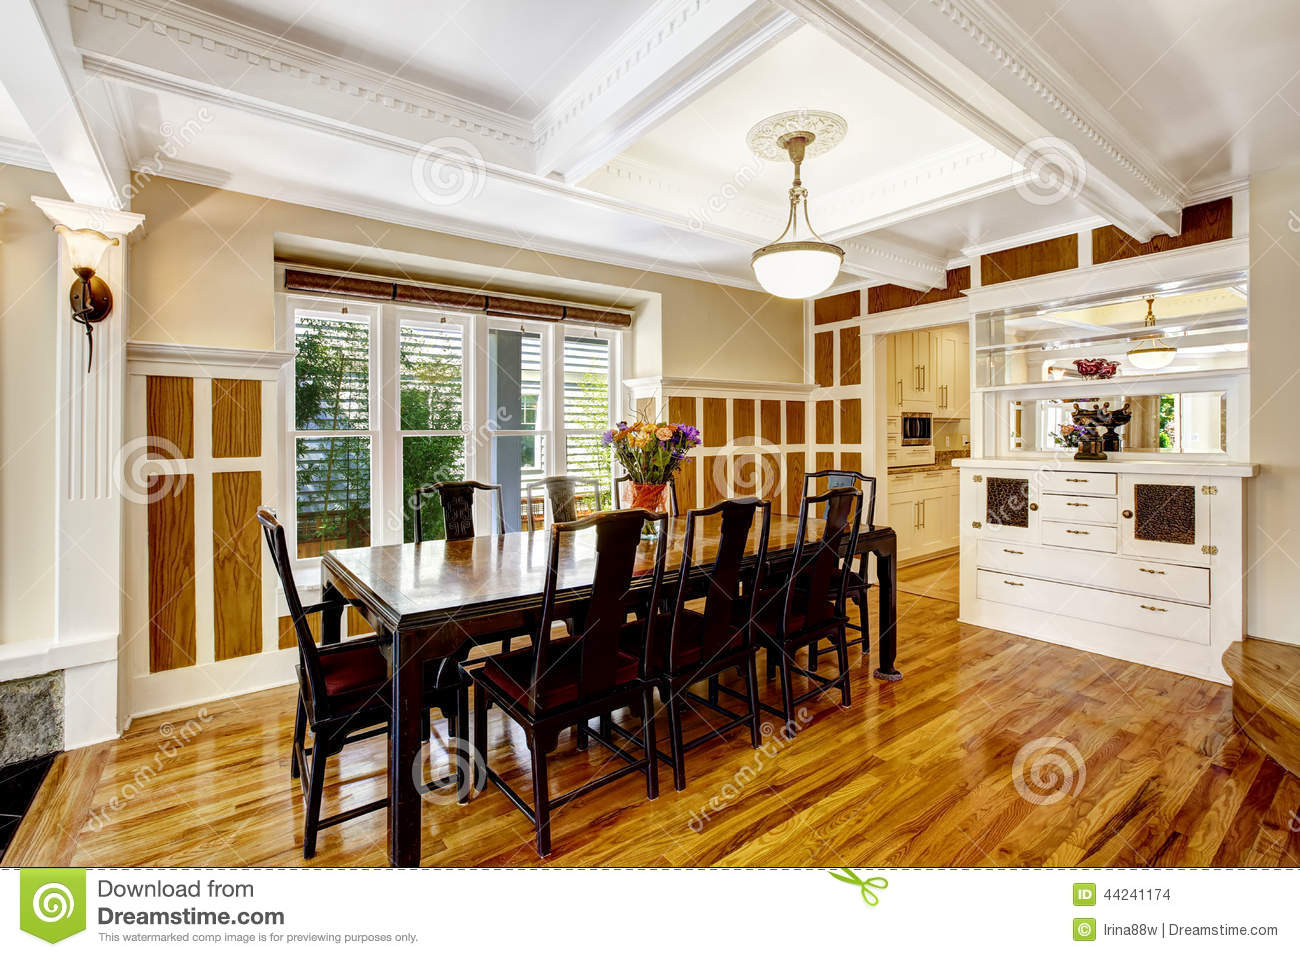 Empressive Dining Room Interior Luxury House With Wood